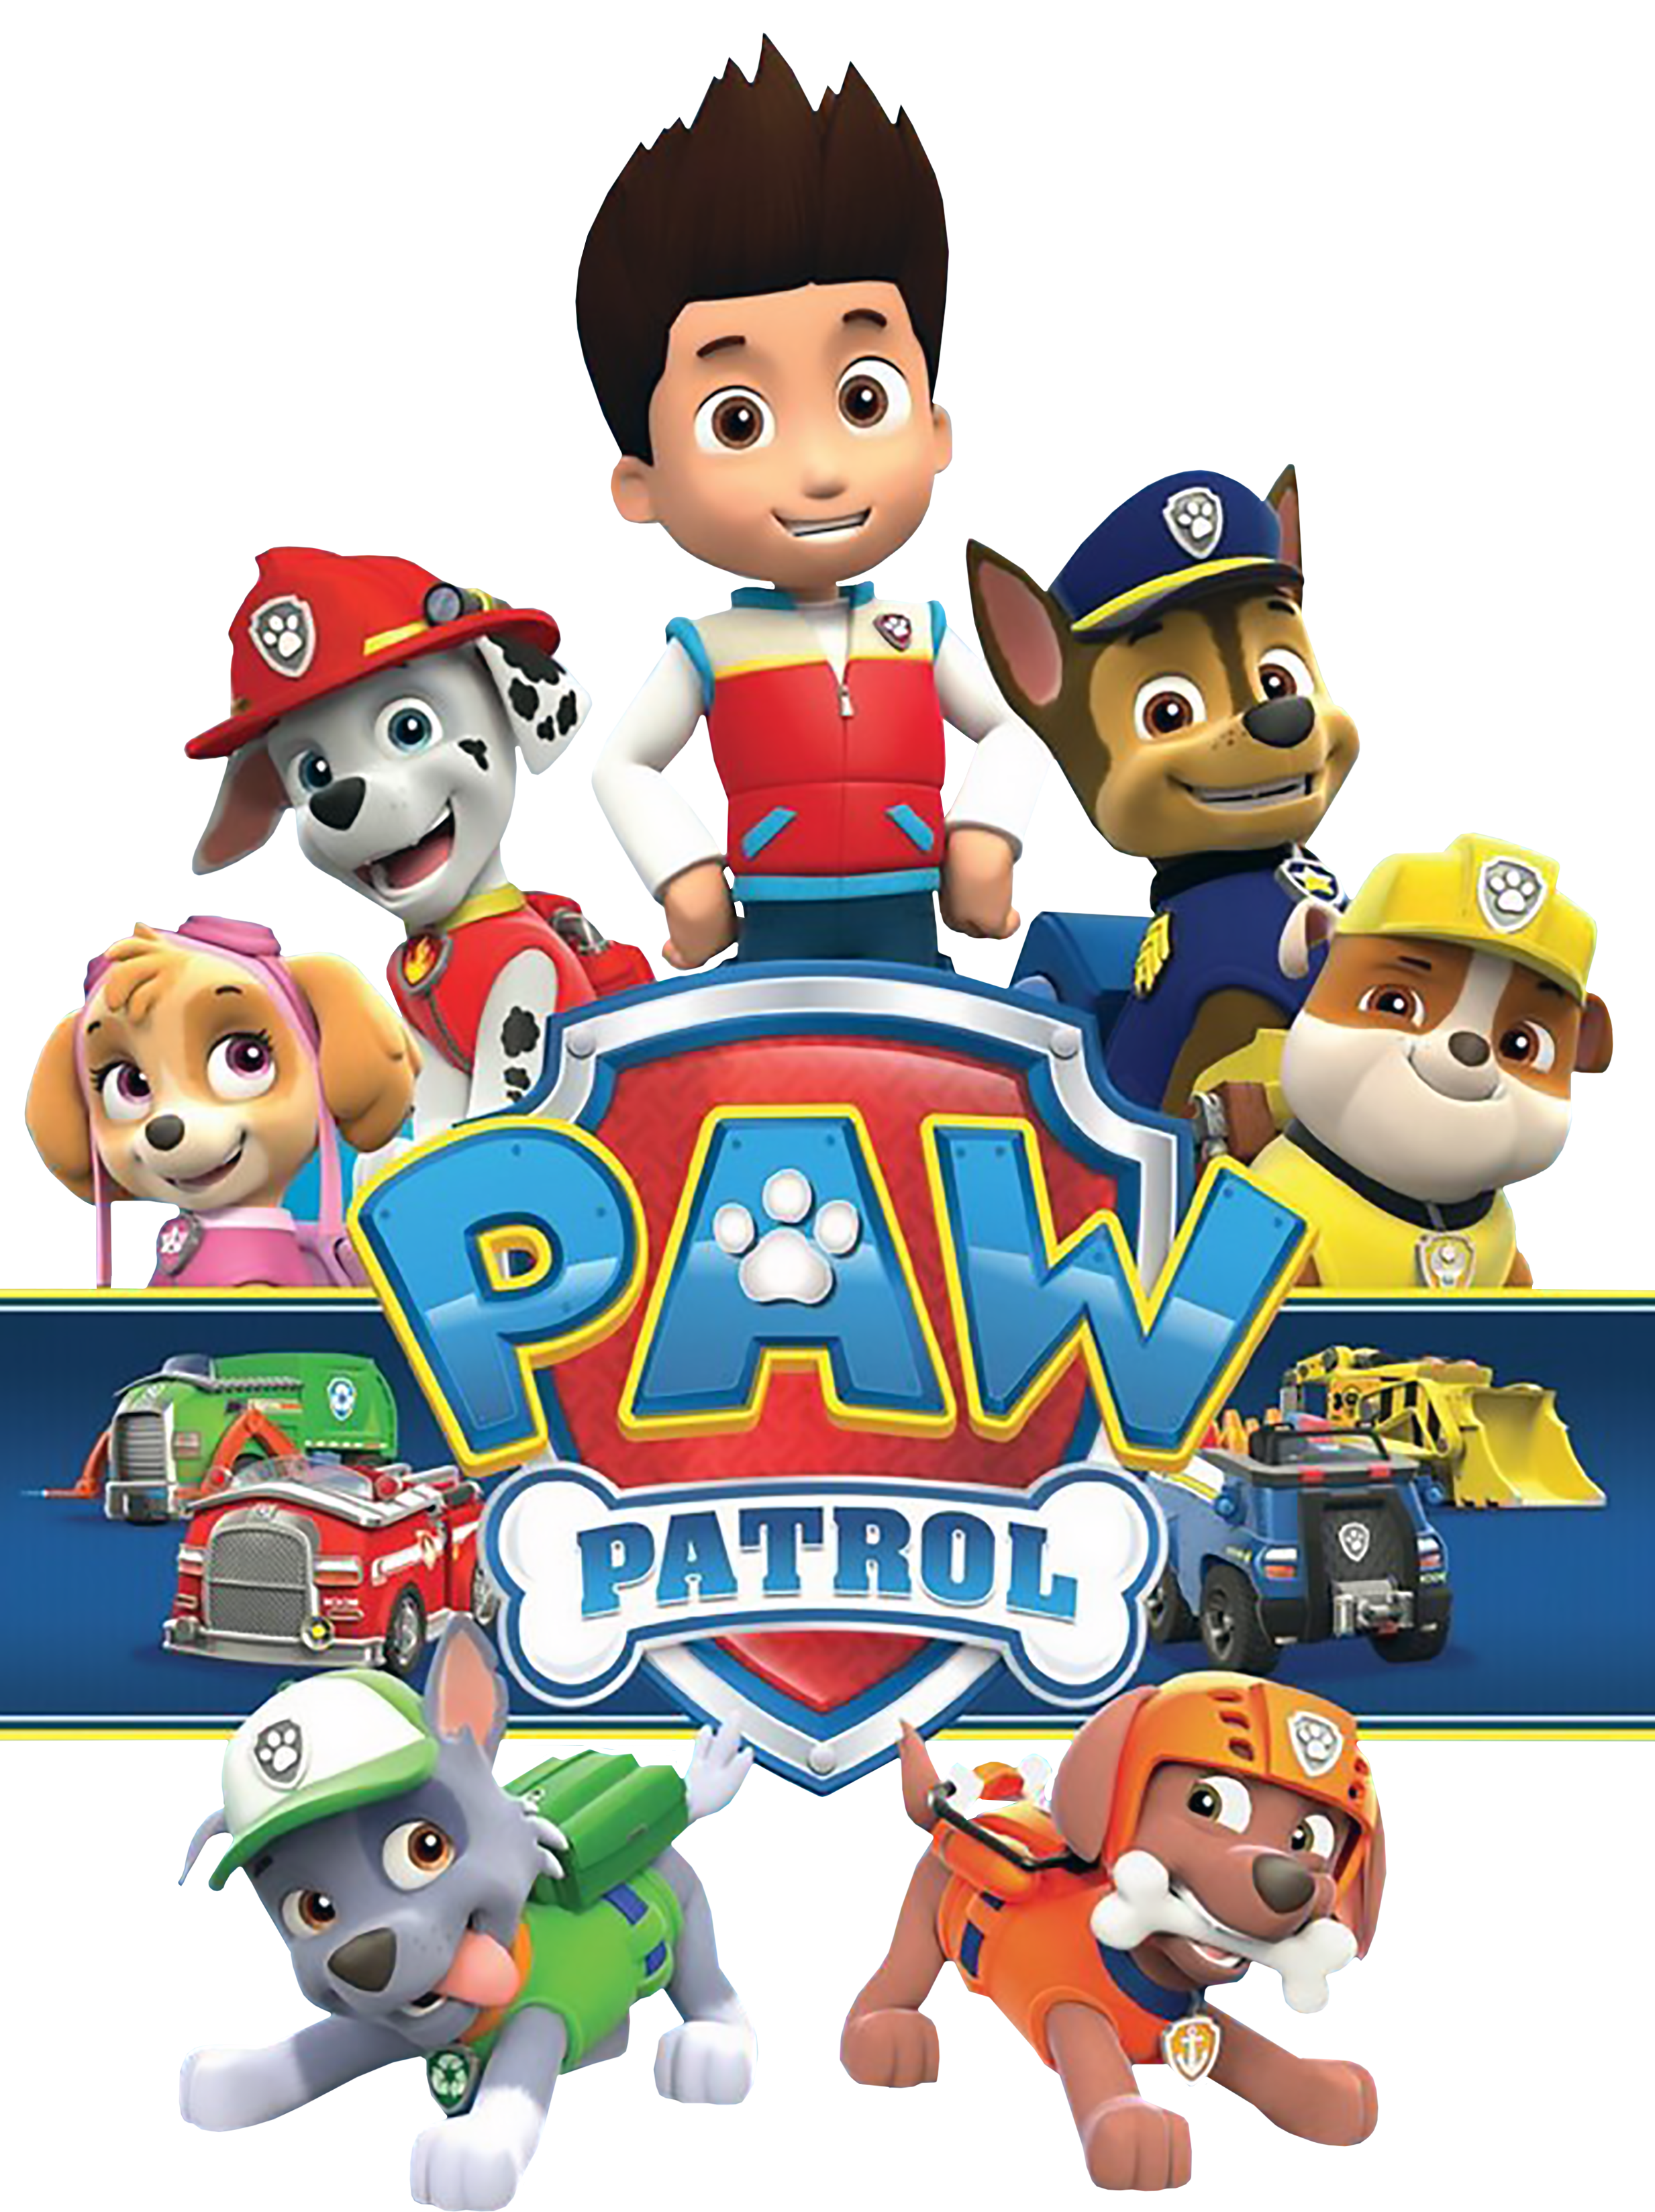 Pin by Heather Grass on party ideas | Pinterest | Paw patrol, Paw ... clipart library